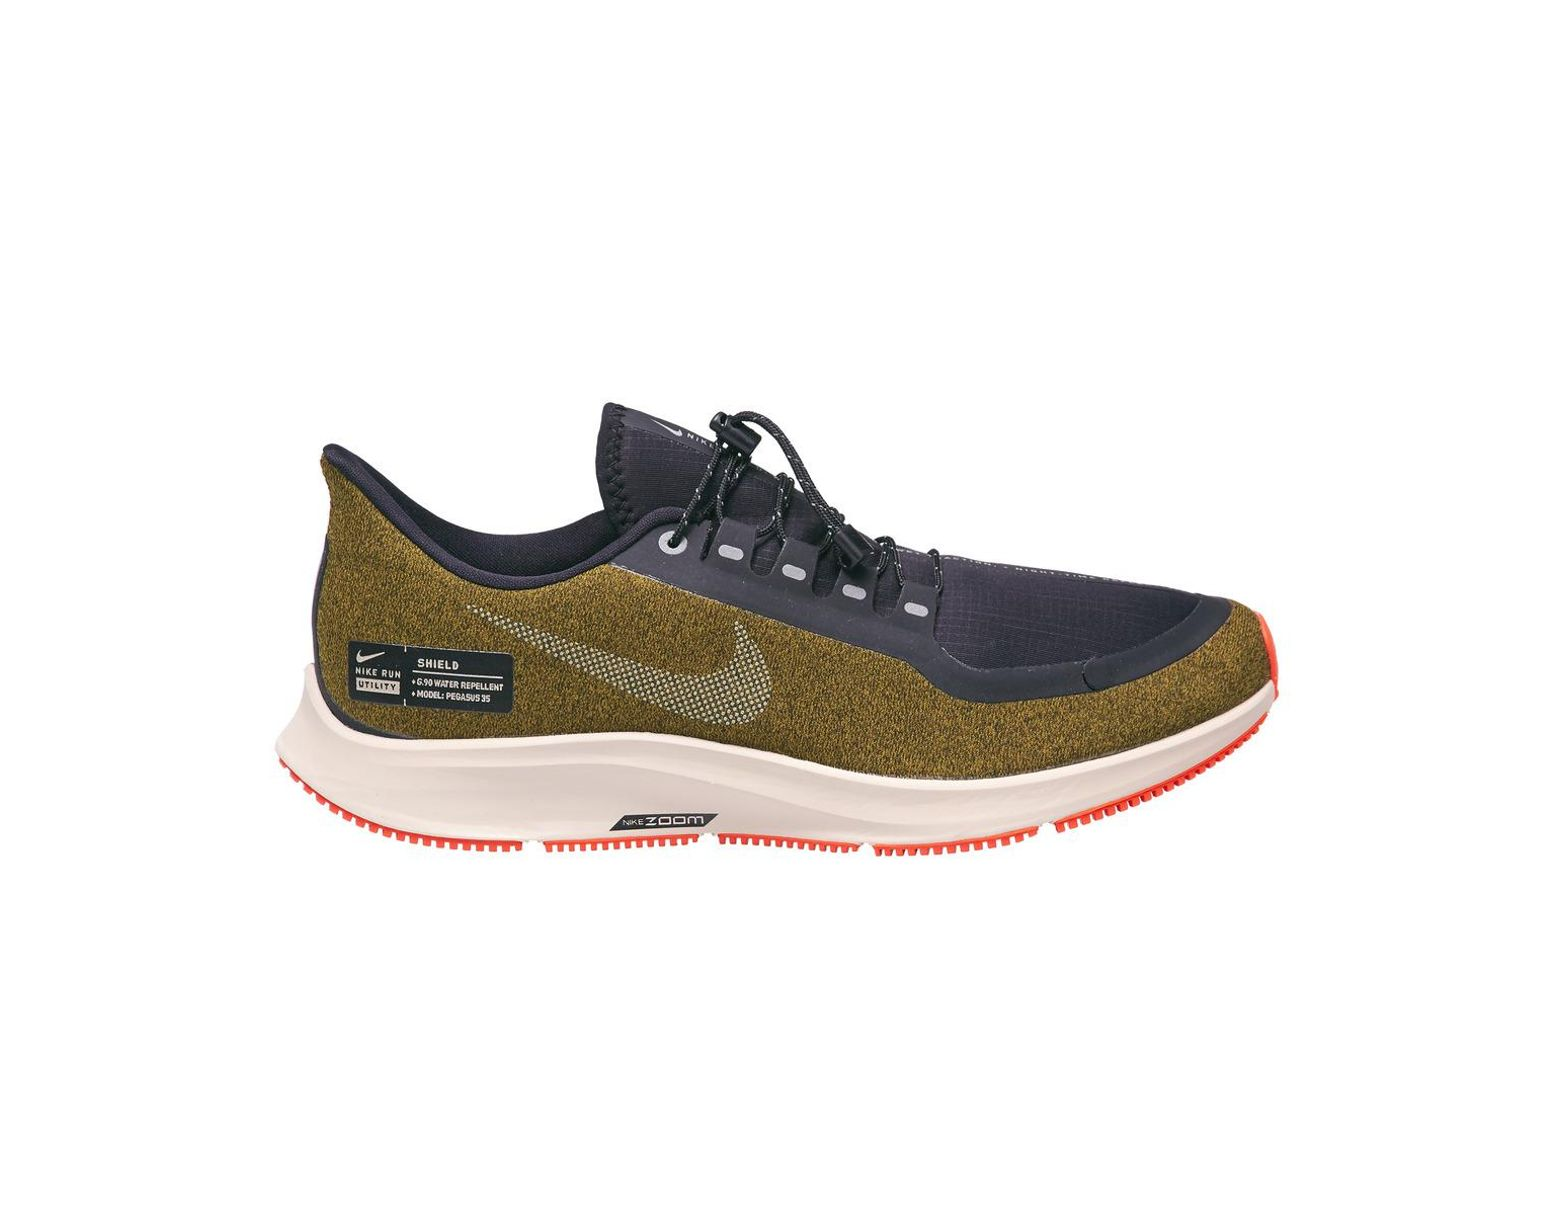 c6b0d22a70 Nike Air Zoom Pegasus 35 Shield Running Shoes for Men - Lyst